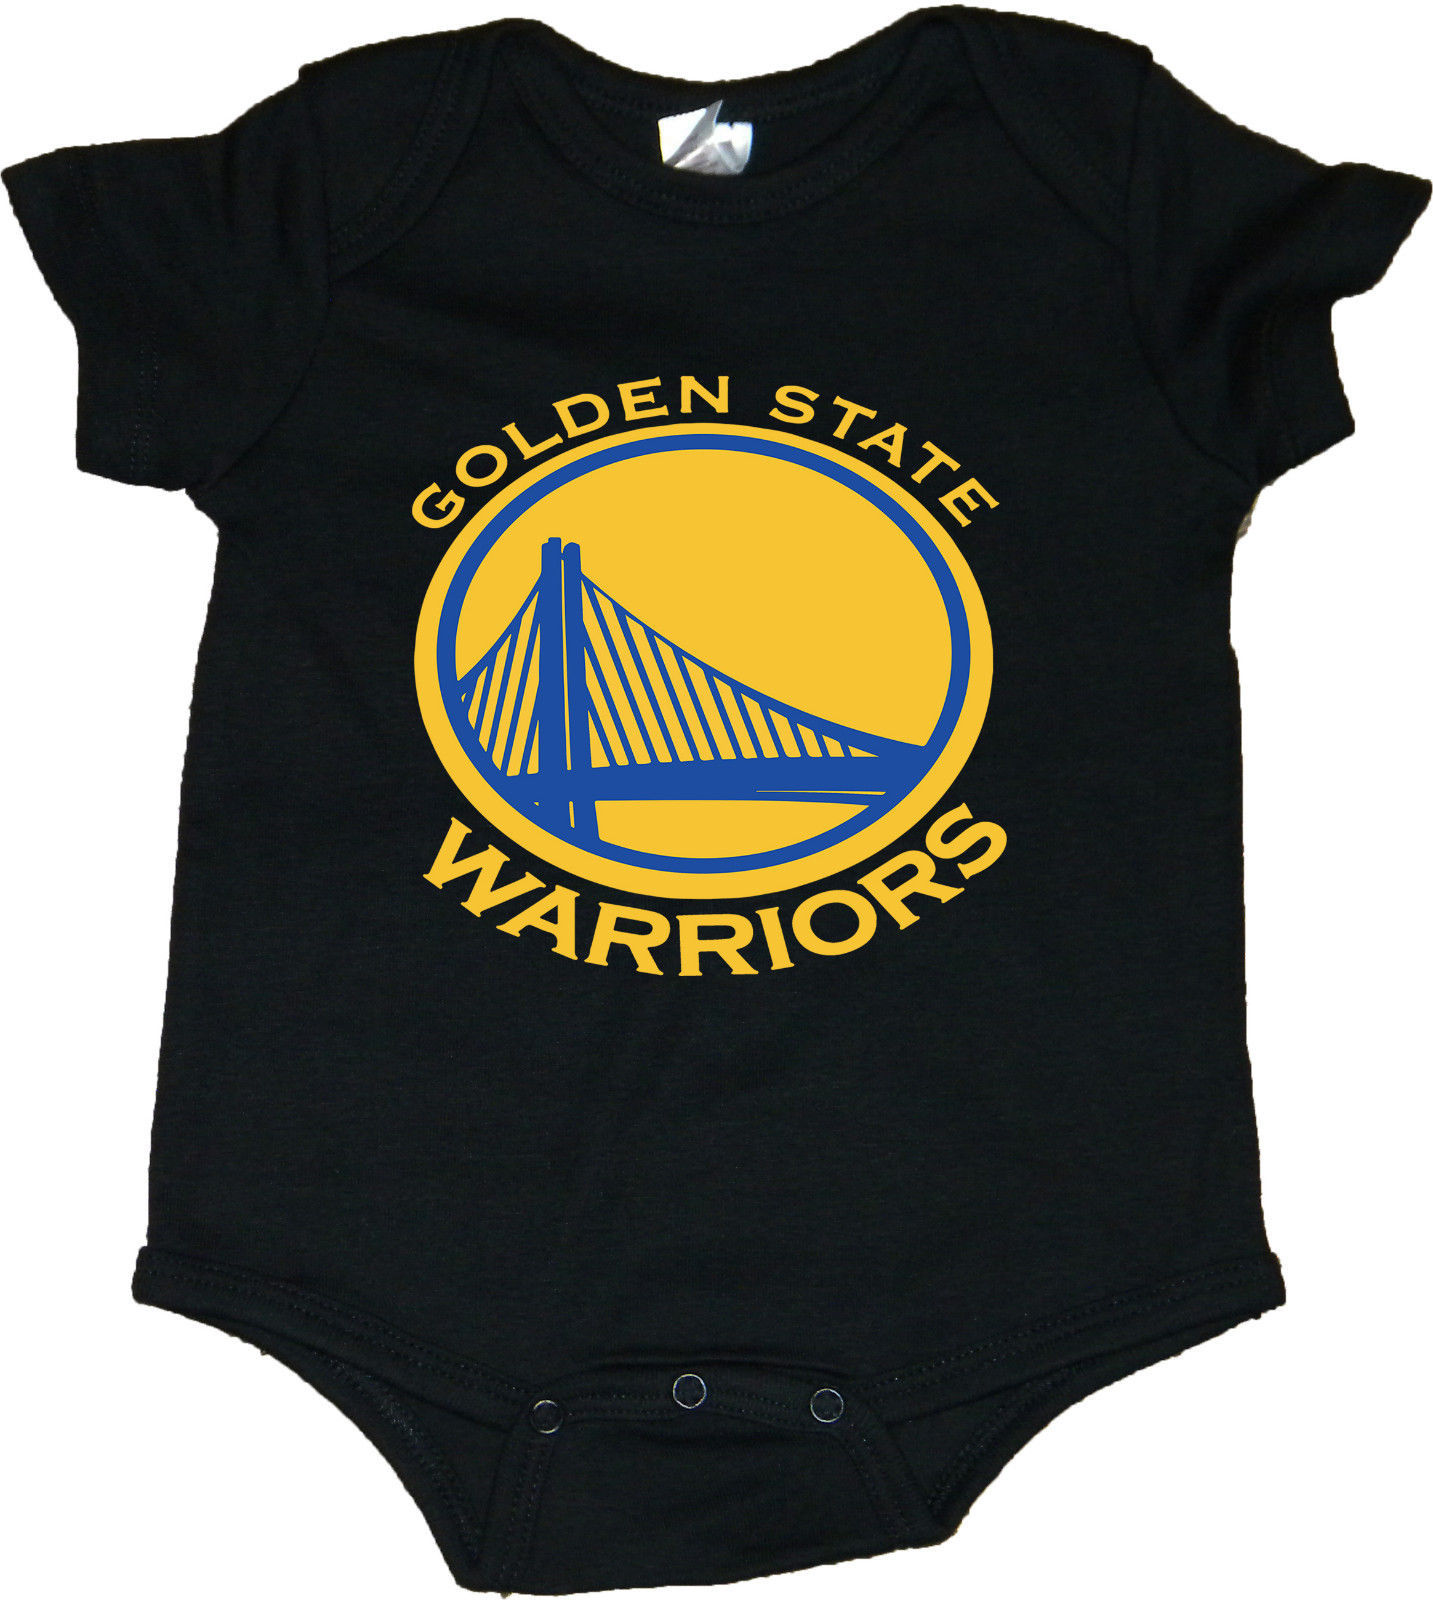 info for 24a78 c7cfc Golden State Warriors Baby Bodysuit/Creeper and 43 similar items